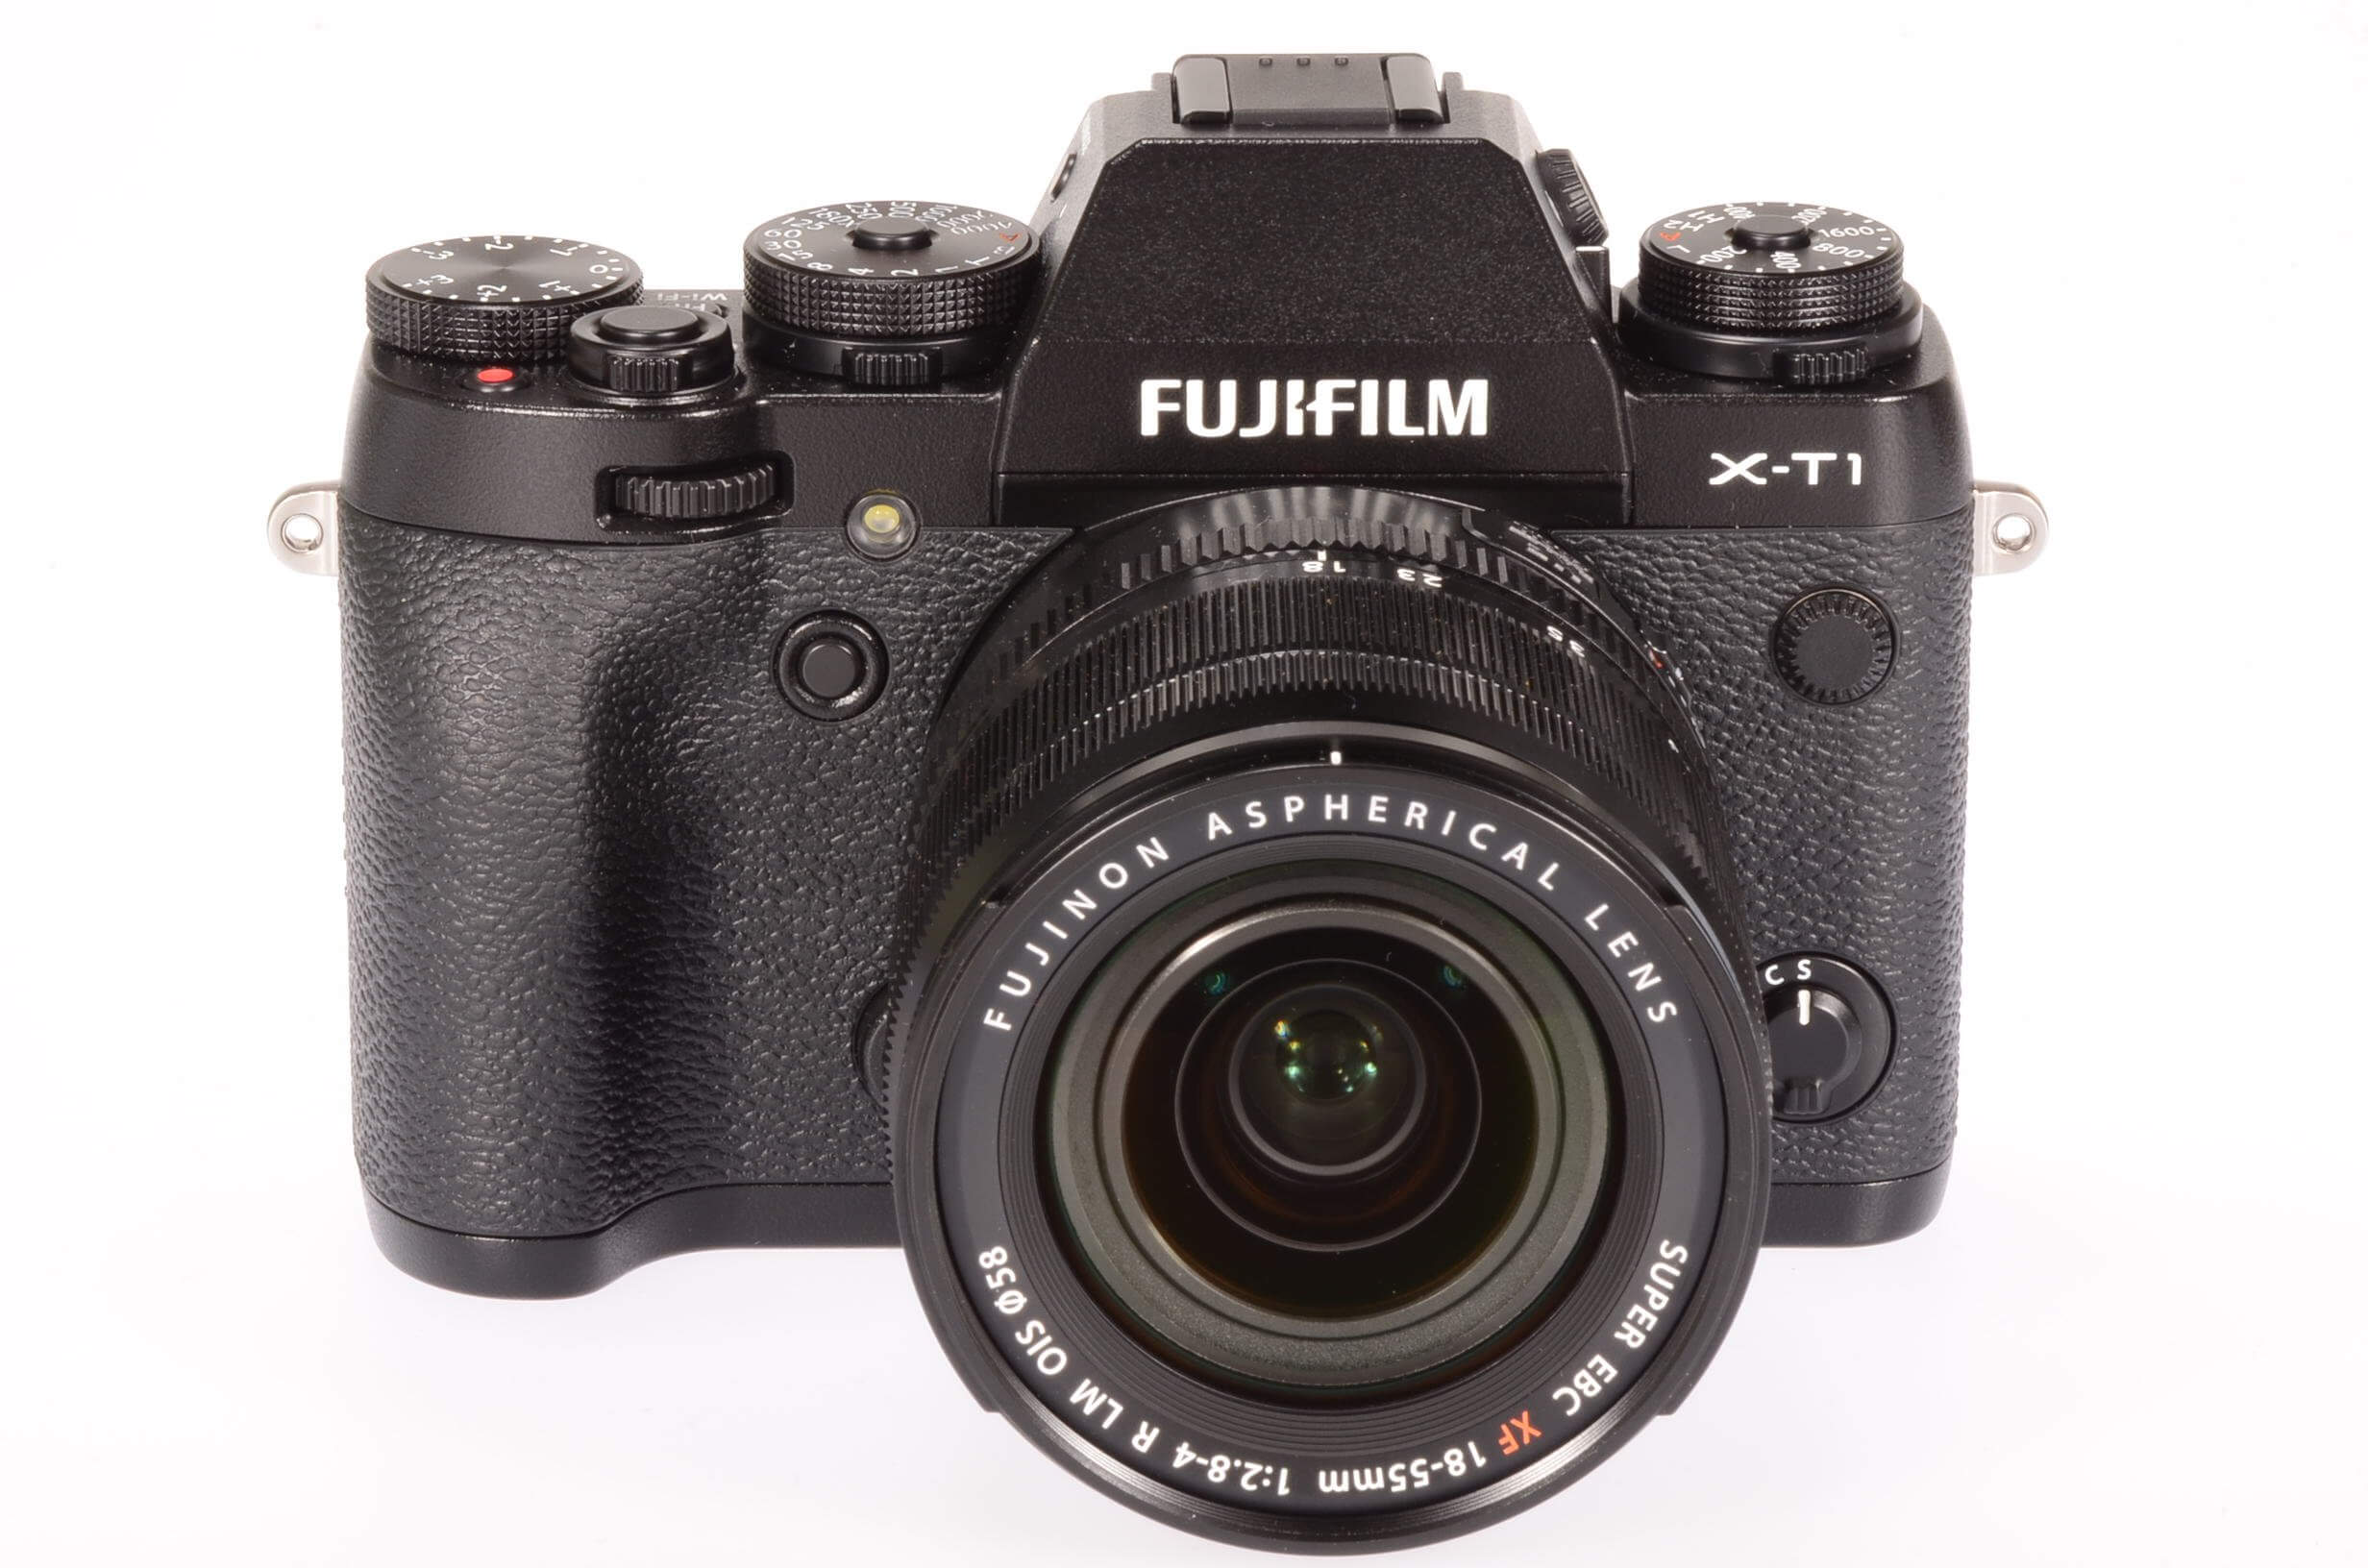 Fuji X-T1 with 18-55mm XF lens, only 4 weeks old!